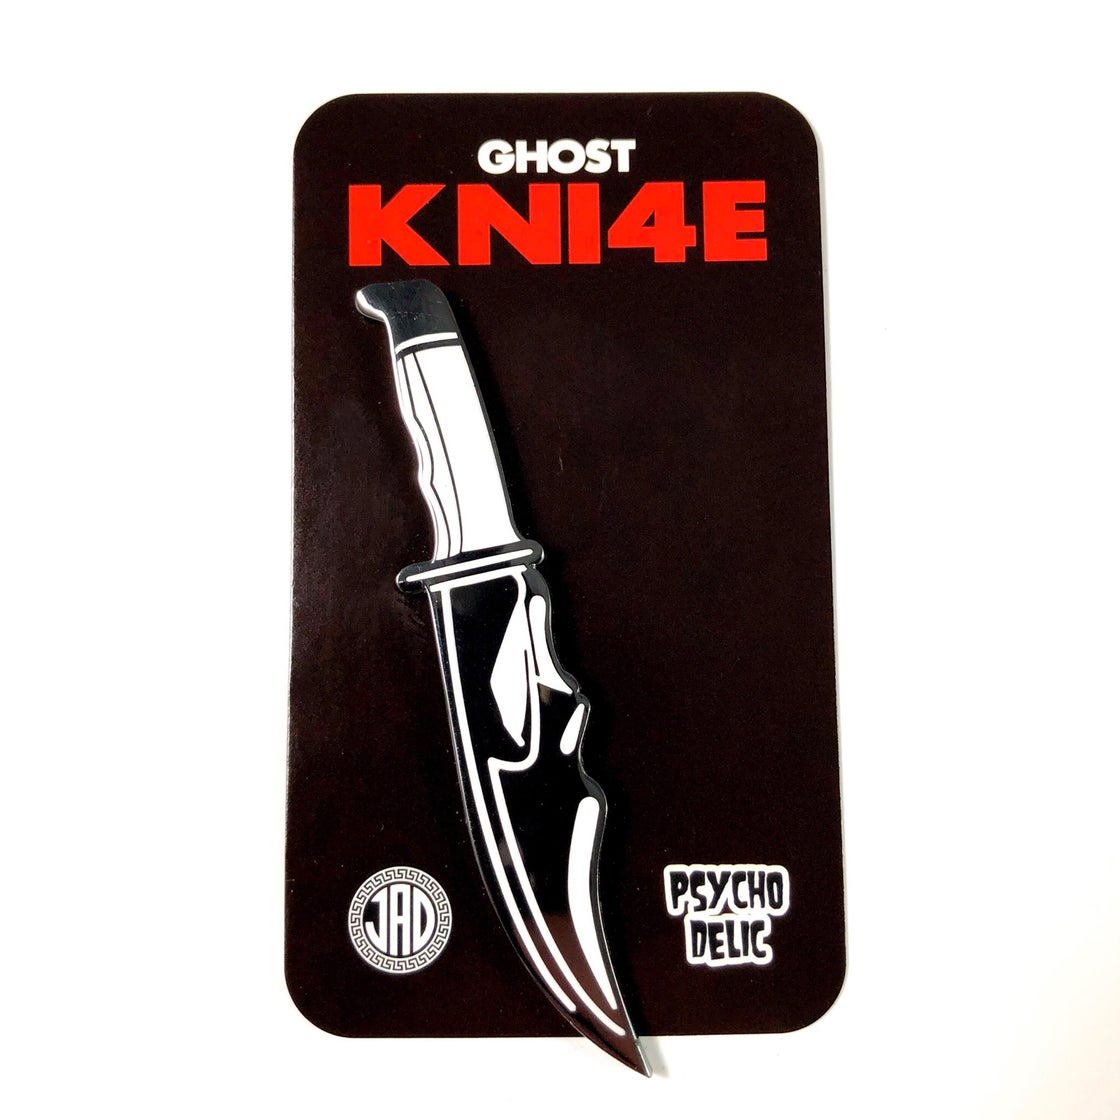 Image of Ghost Kni4e Invert Edition Pin